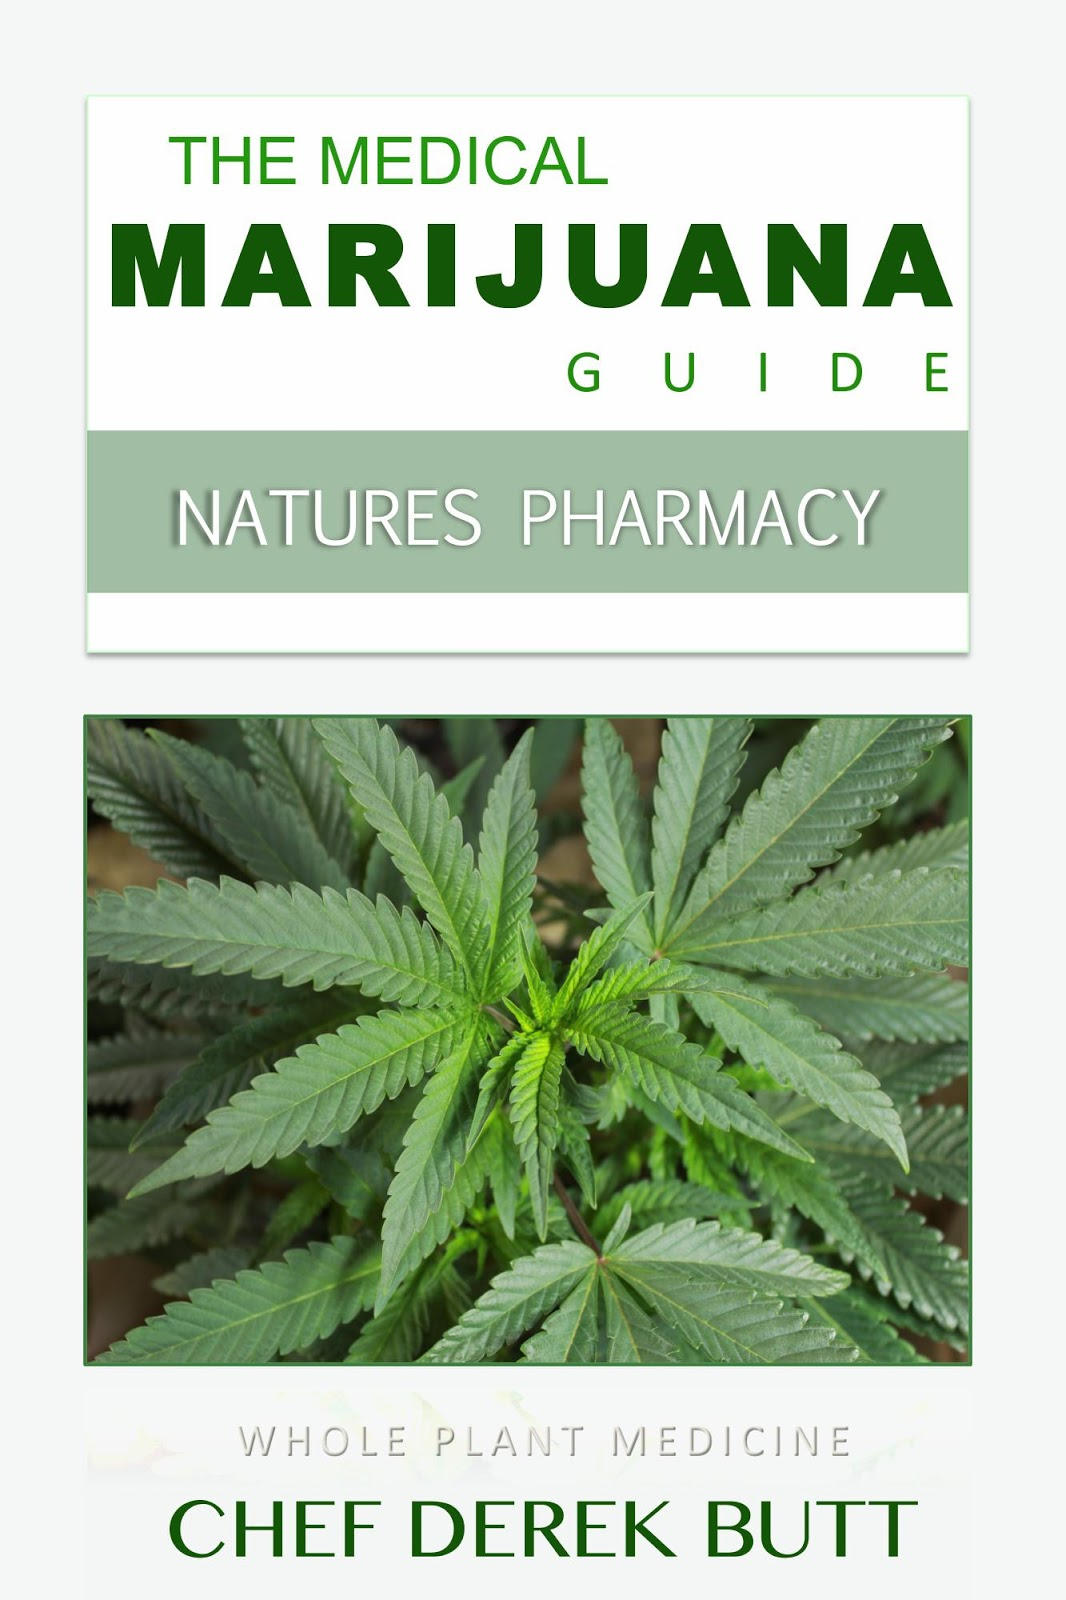 Marijuana nutrition facts and benefits the medical marijuana guide the medical marijuana guide natures pharmacy has more information on fresh raw marijuana and how fresh raw marijuana can benefit you as a source of nvjuhfo Image collections